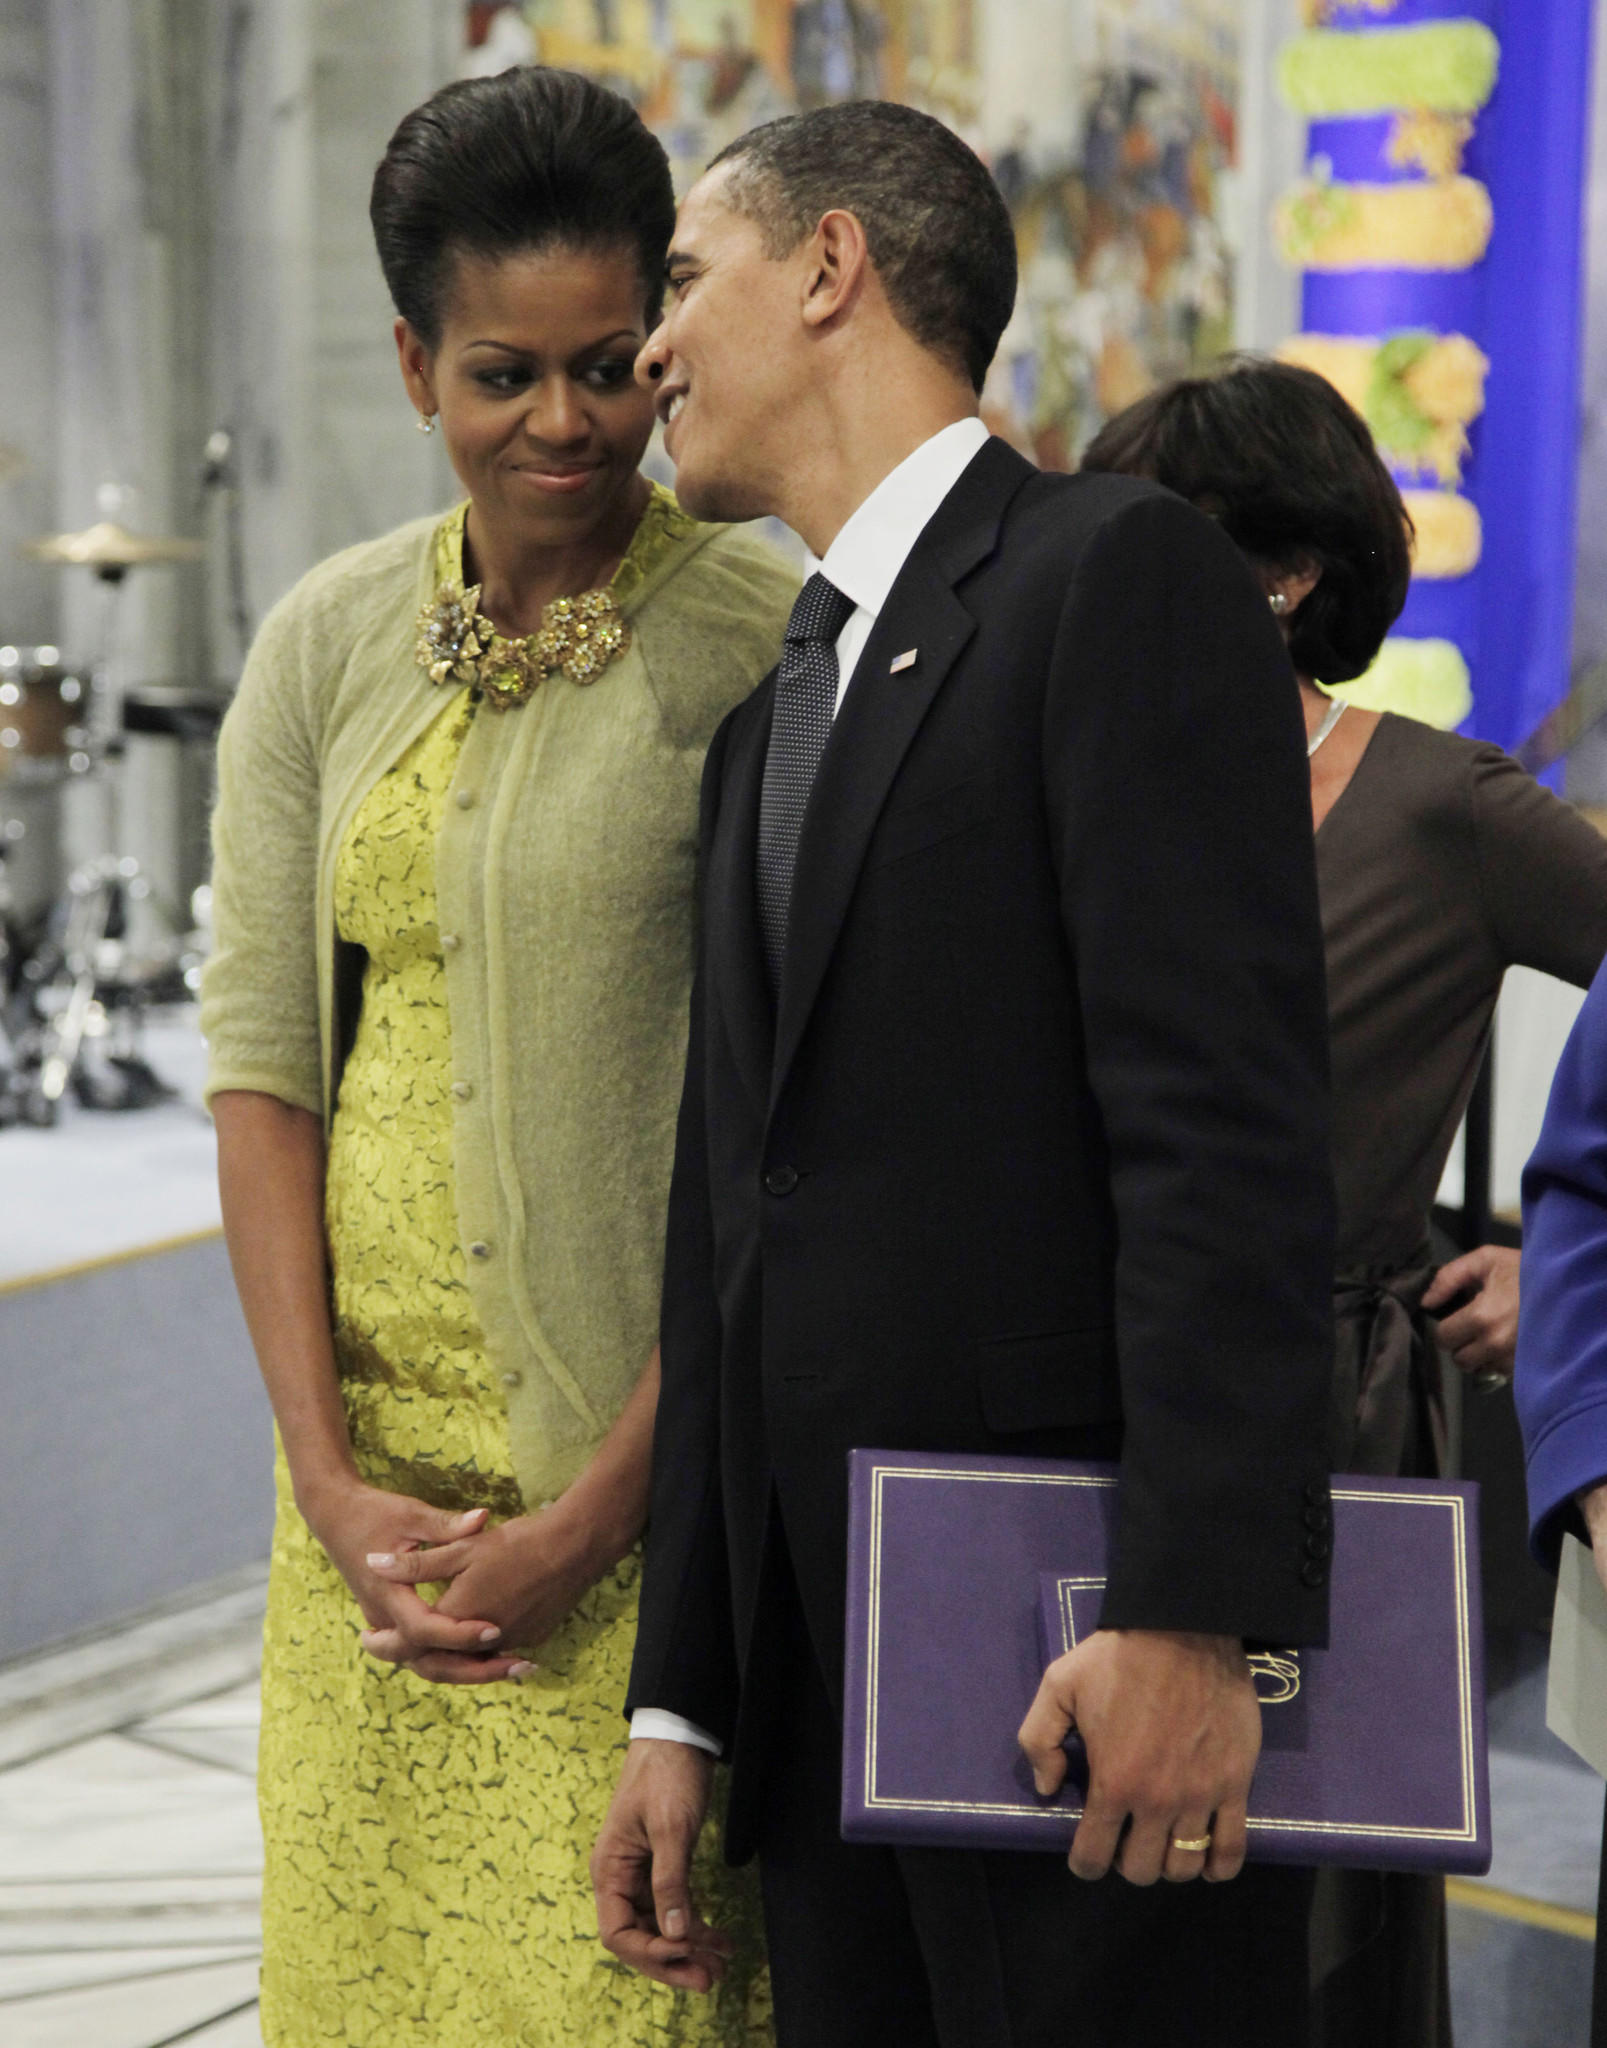 President and Nobel Peace Prize laureate Barack Obama speaks with his wife, first lady Michele Obama, after his Nobel lecture at the Nobel Peace Prize ceremony at City Hall in Oslo in 2009.